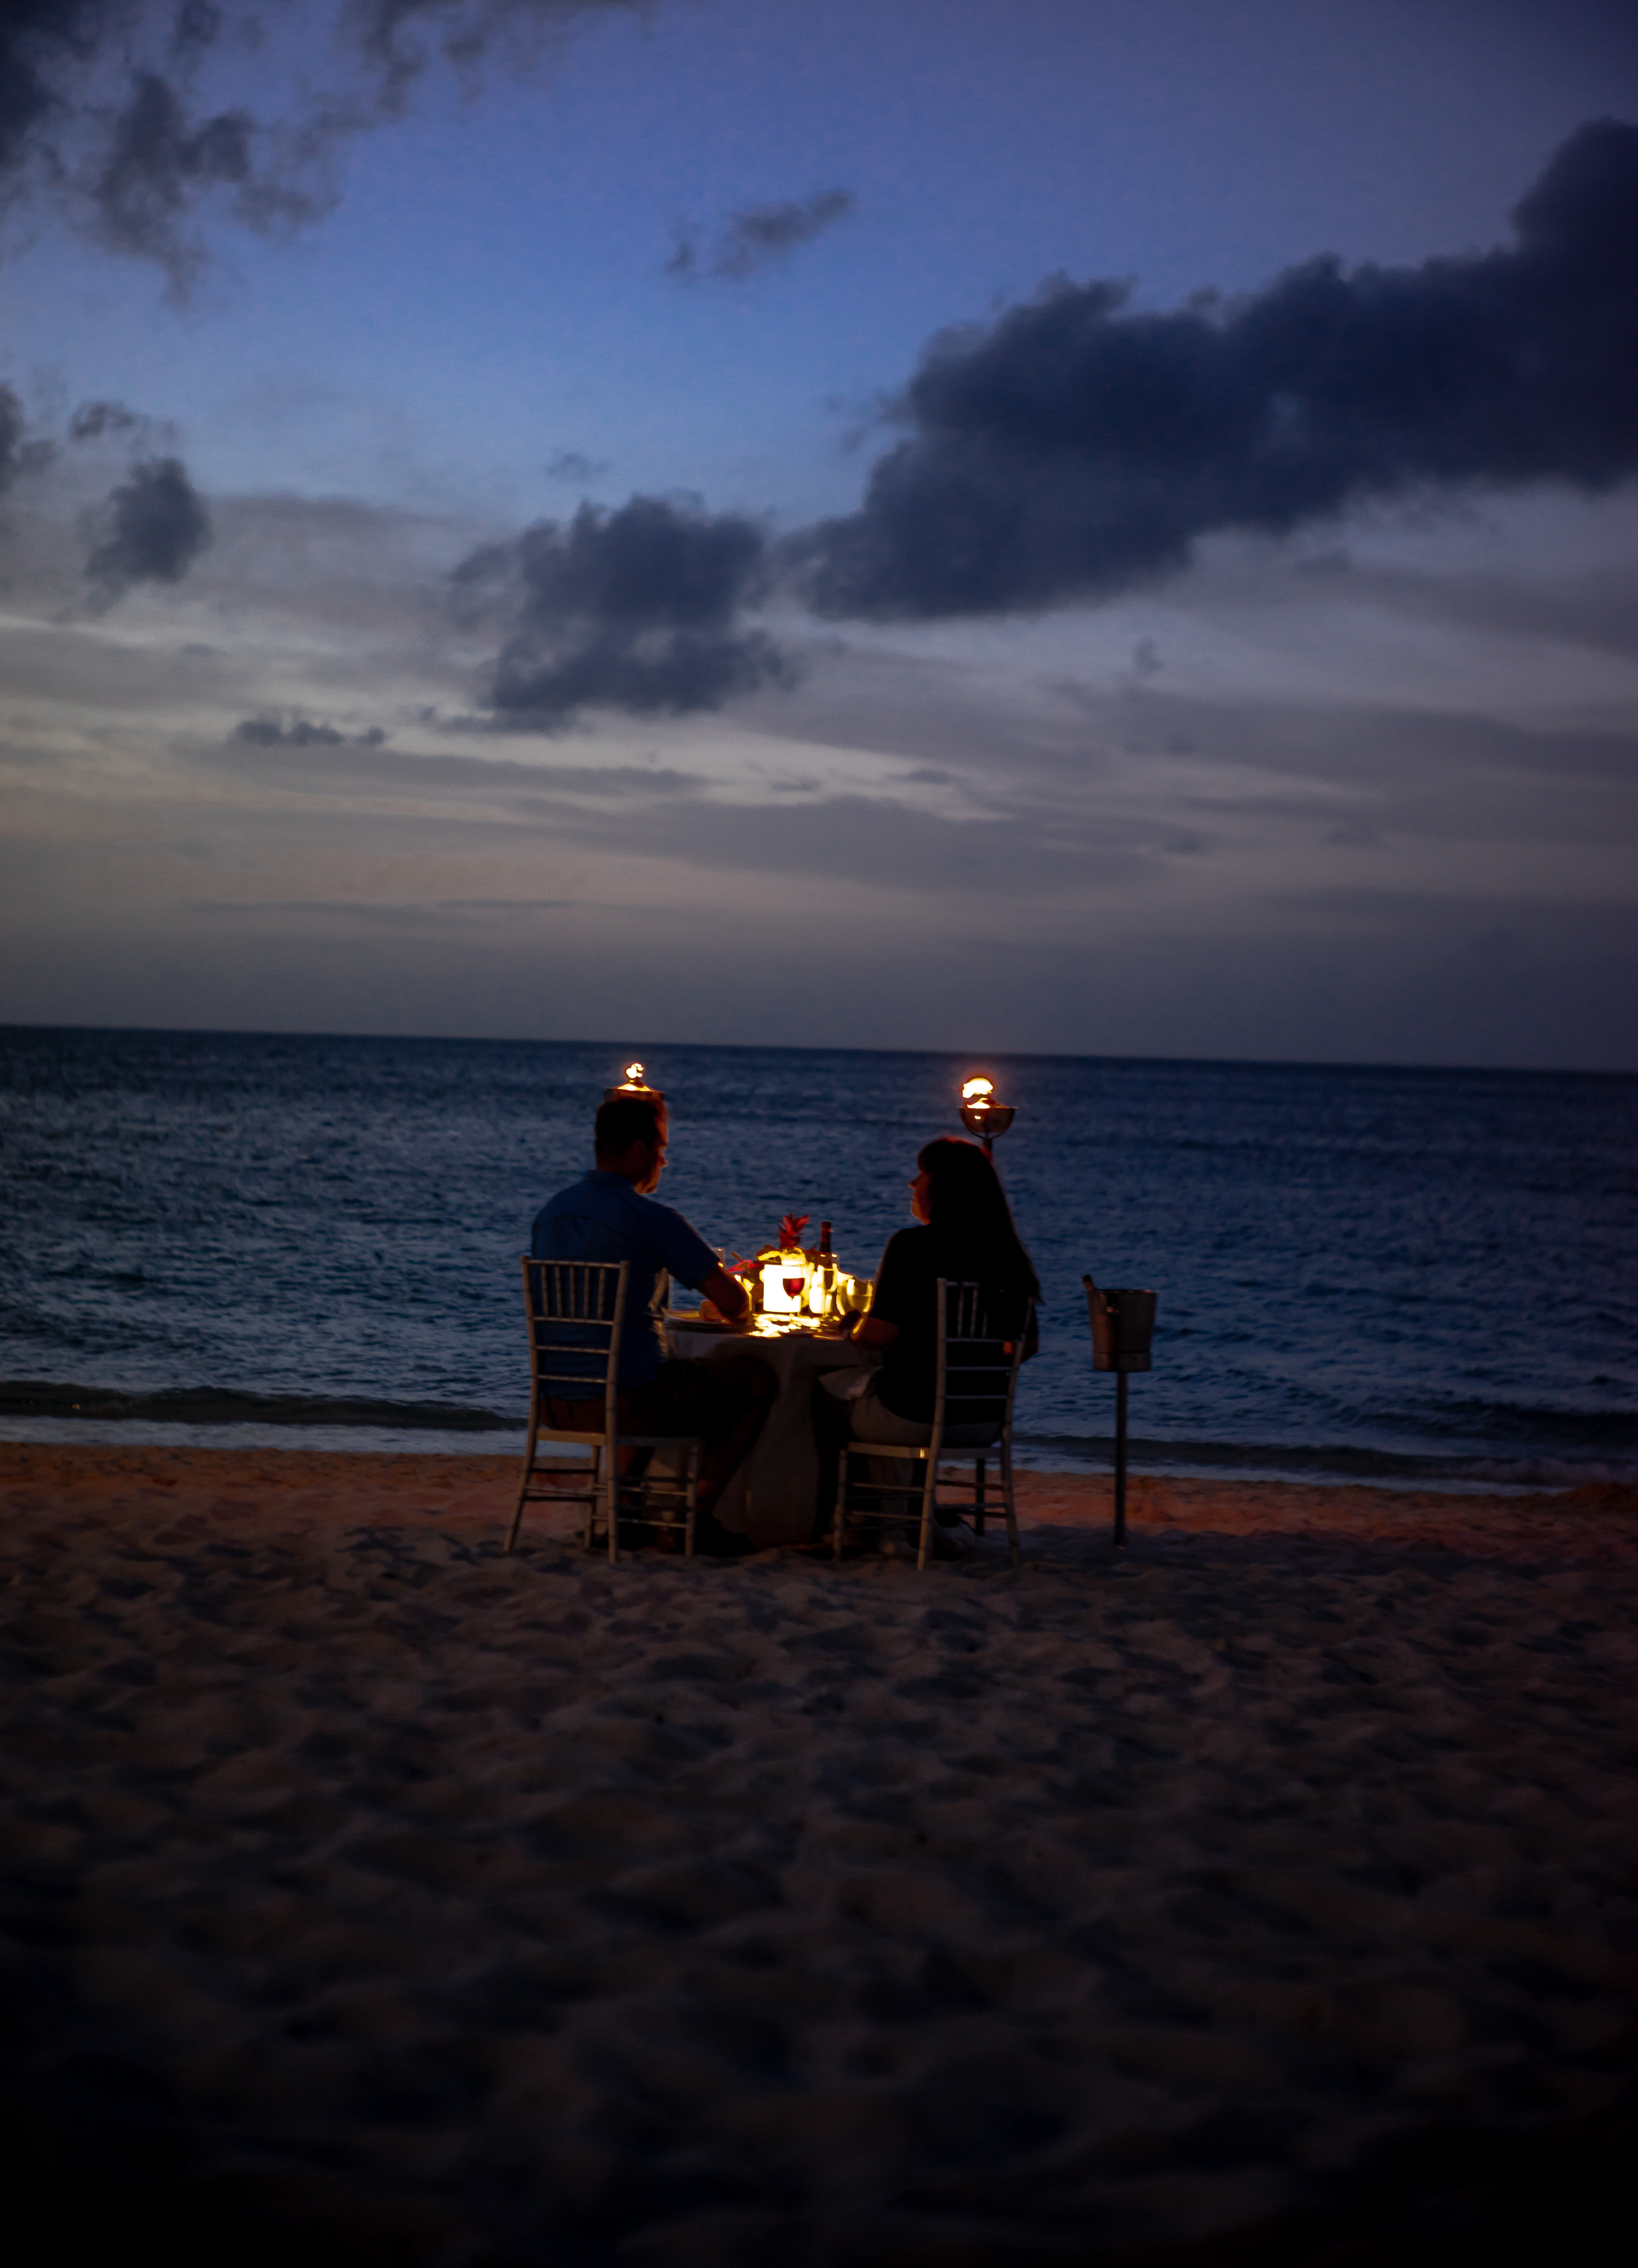 coupe on dinner date on seashore